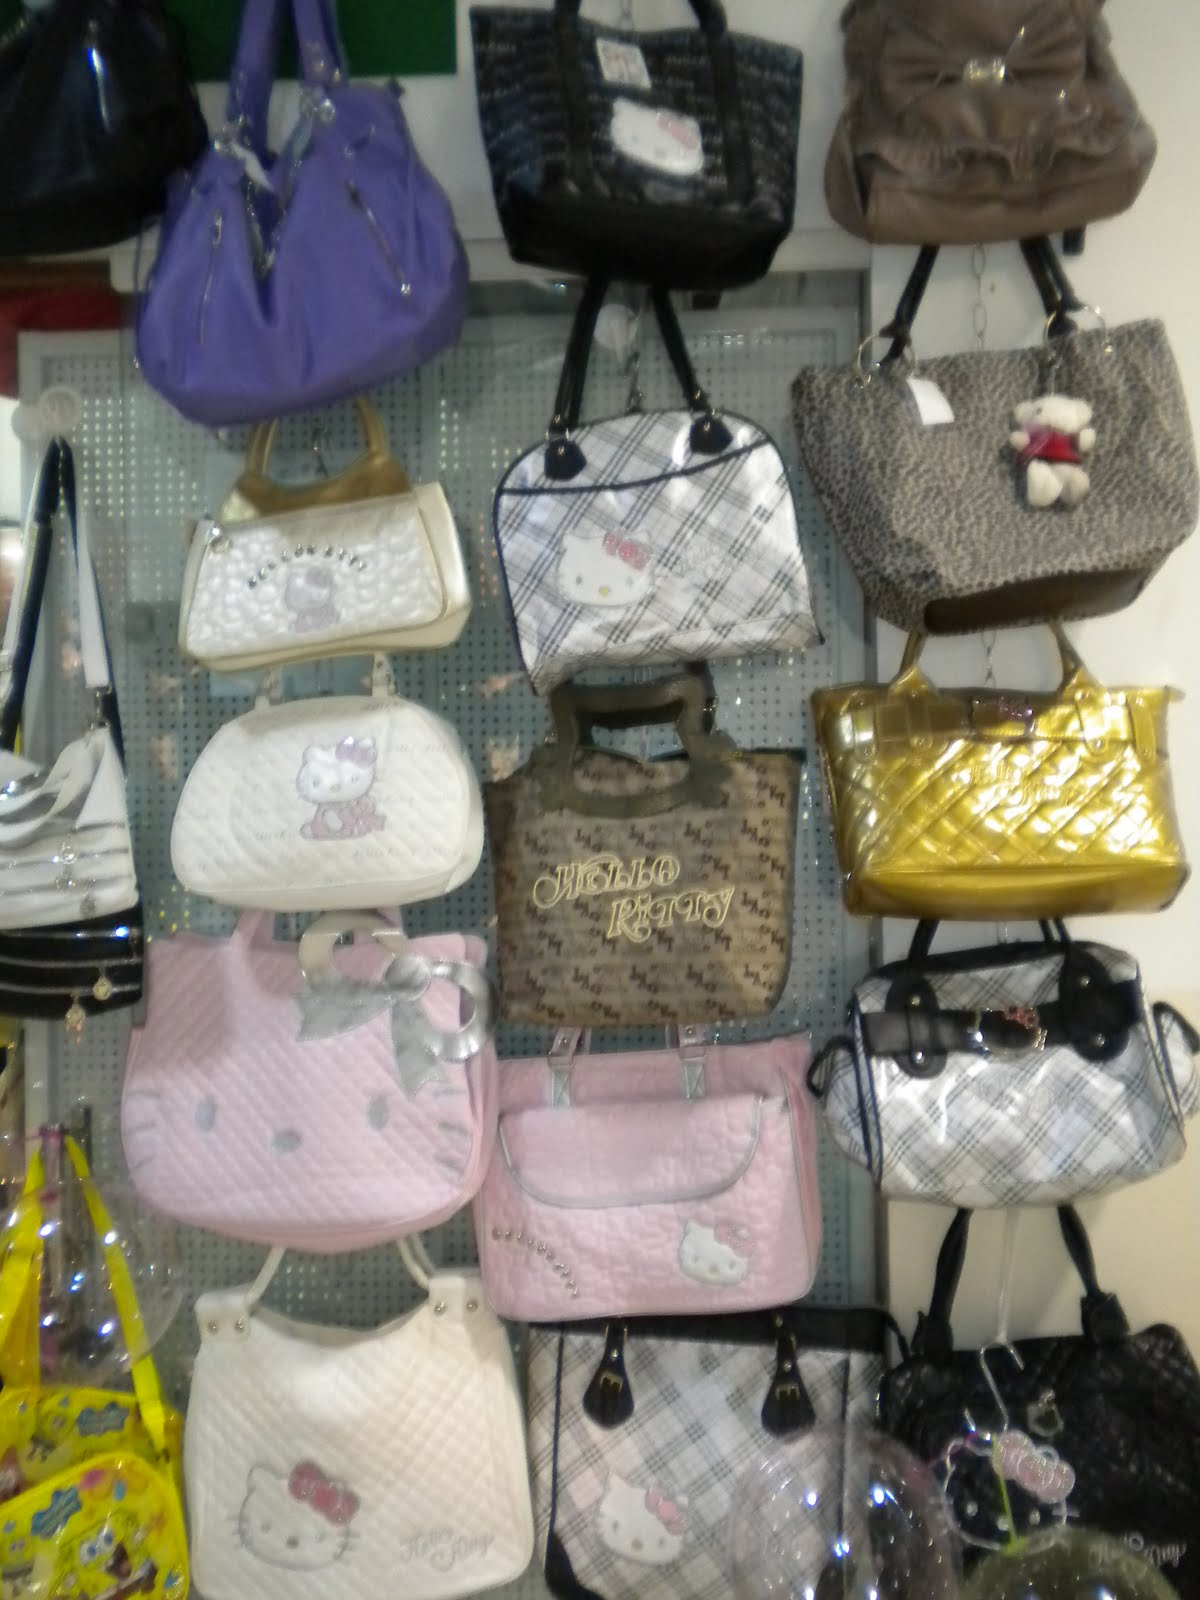 swing chair dragon mart leg sliders for carpet here today dubai tomorrow window washer all of these are hello kitty purses this one is you dara